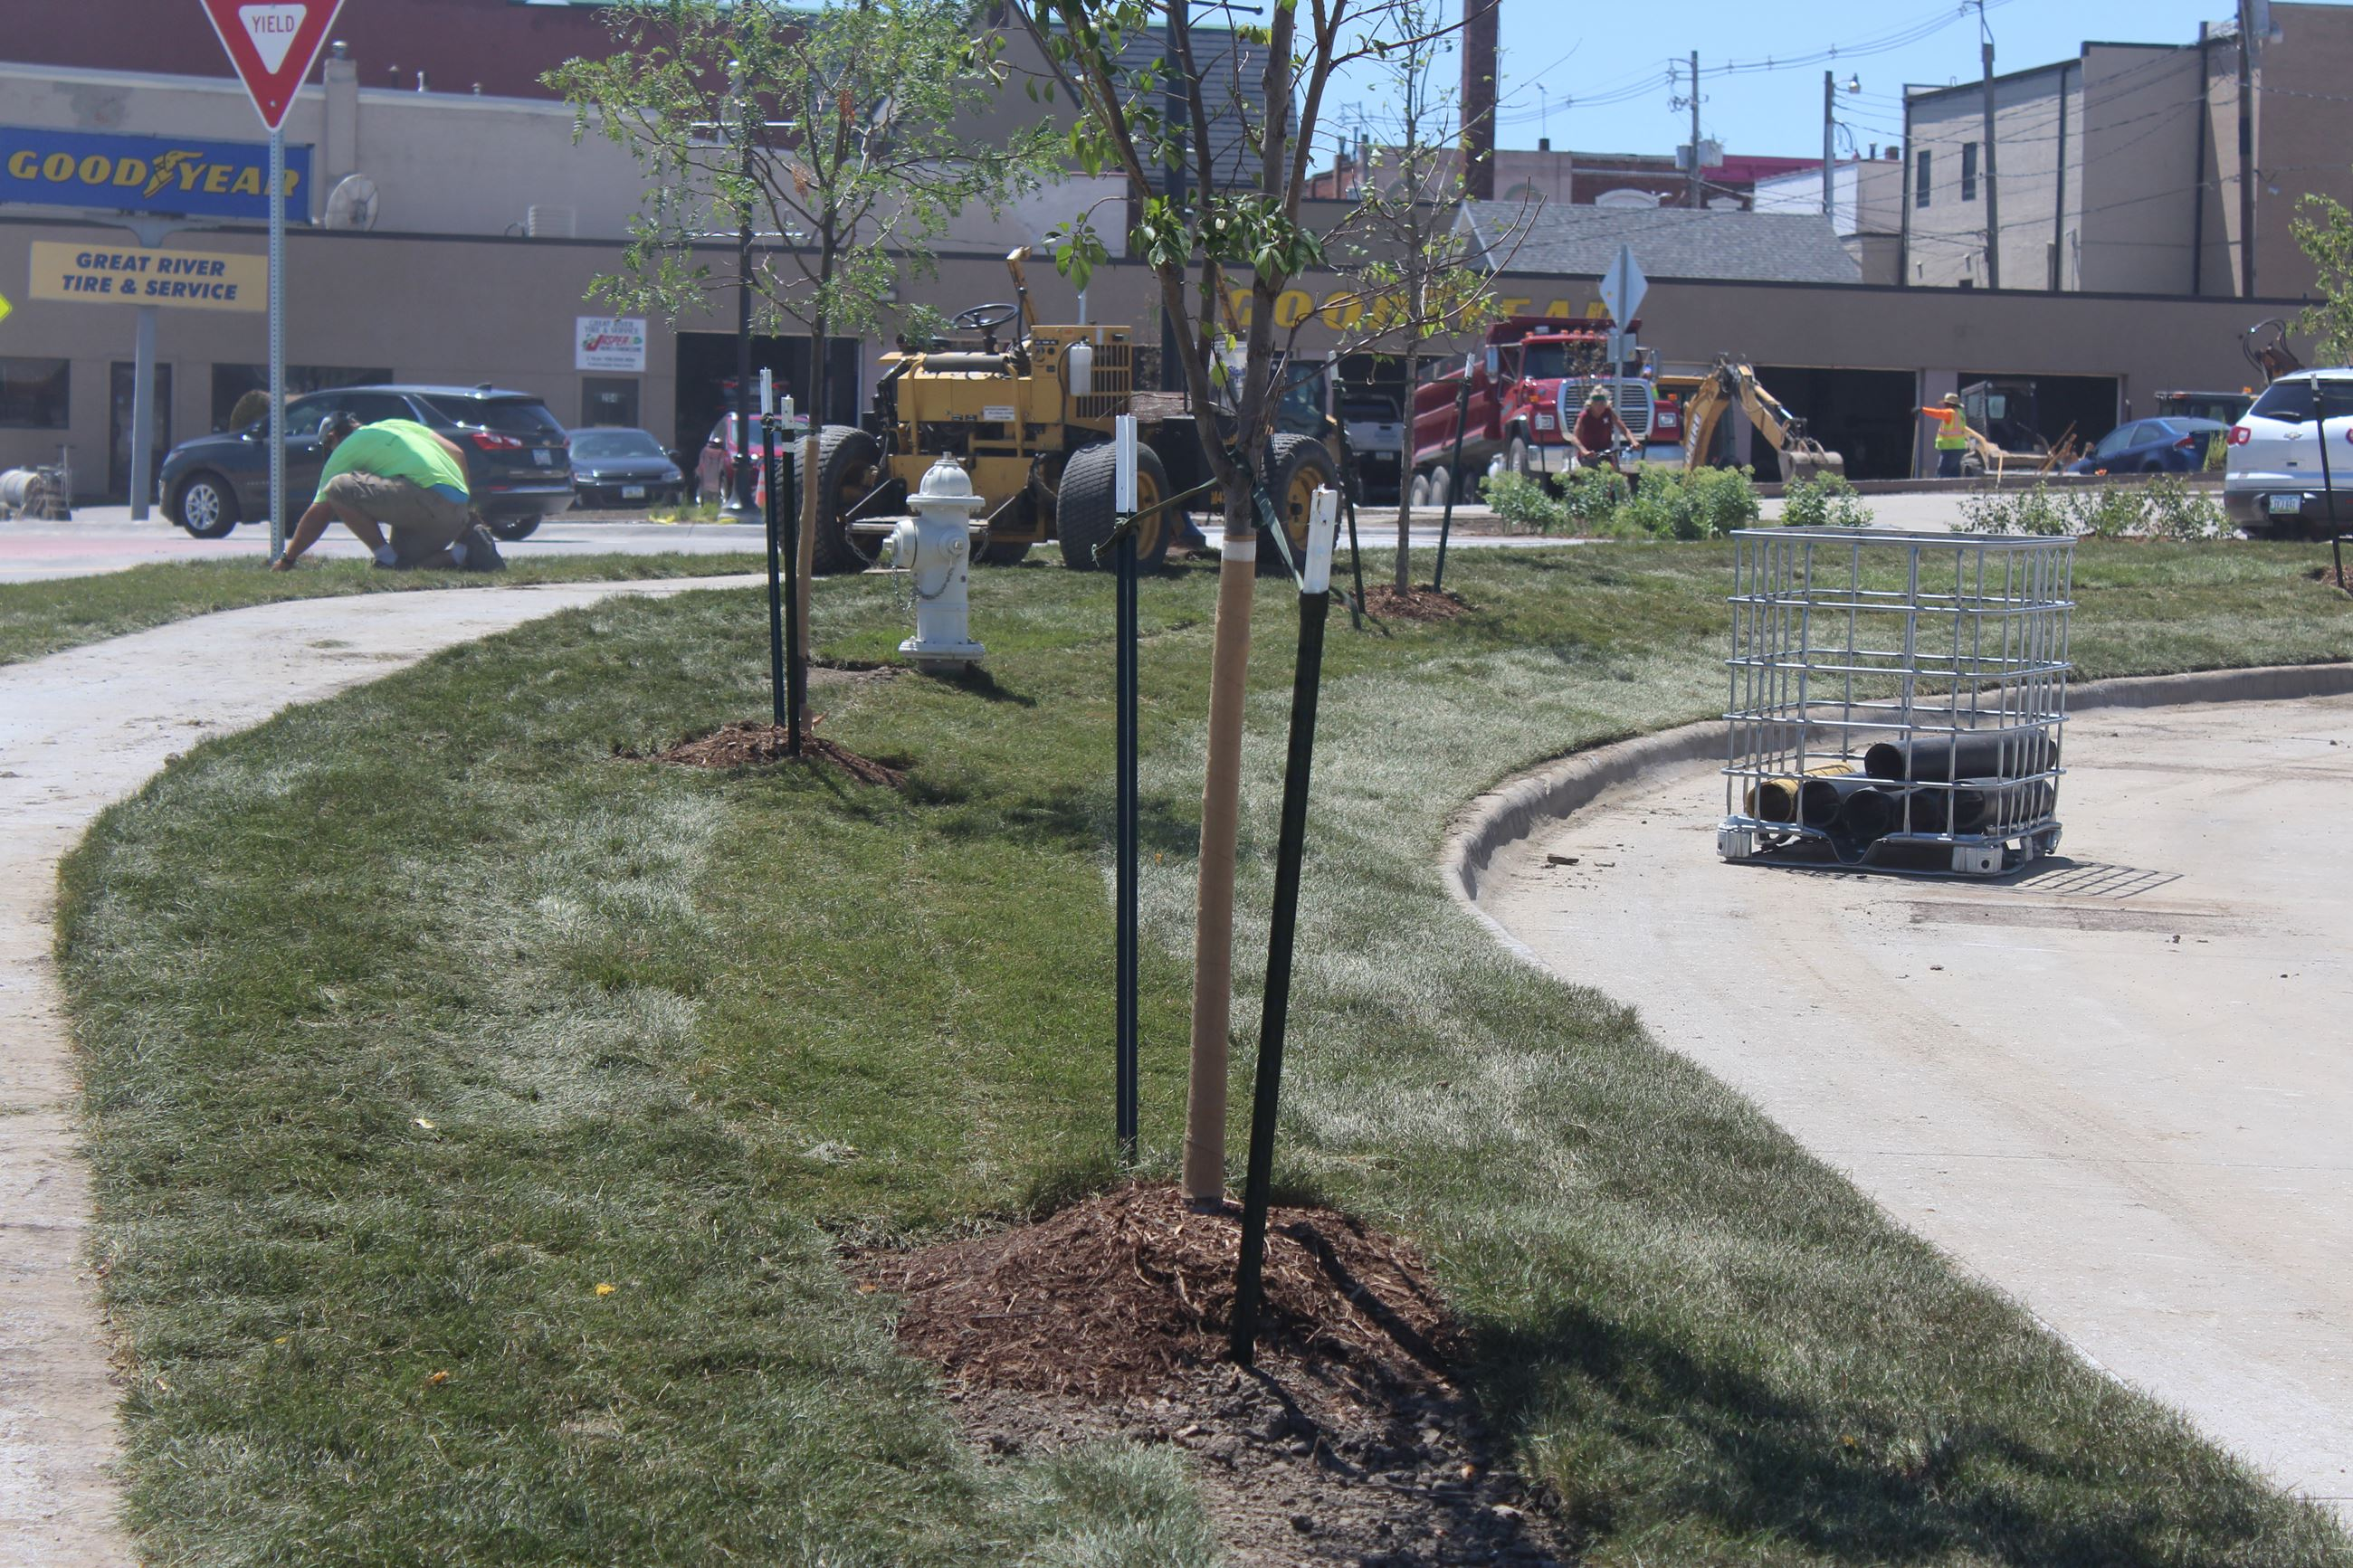 072820 Roundabout - Landscaping - placing grass (JPG)